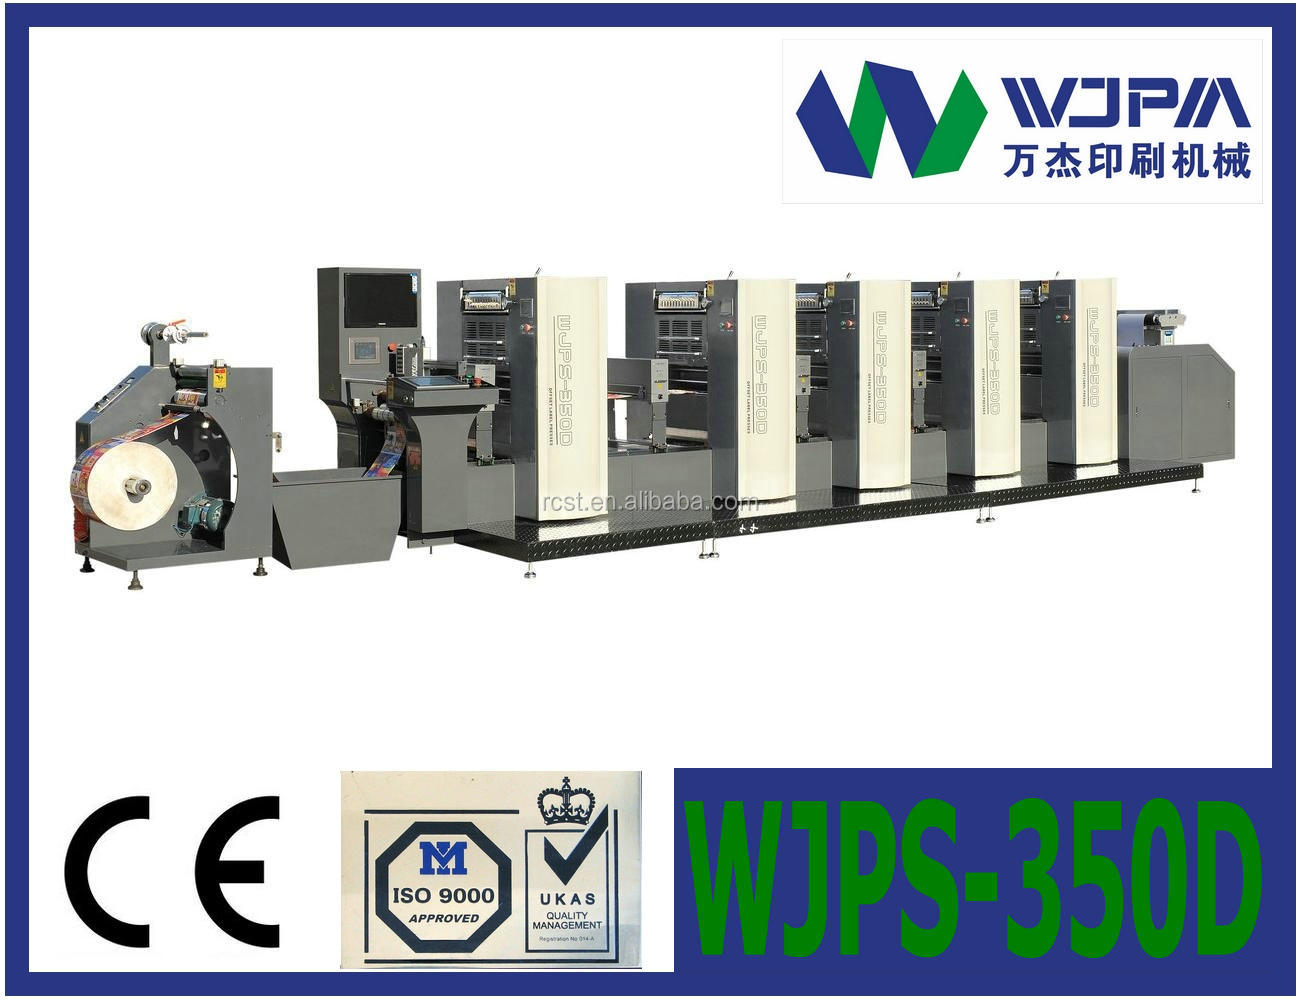 Photopolymer offset Exposing/exposure Unit (WJSB350)